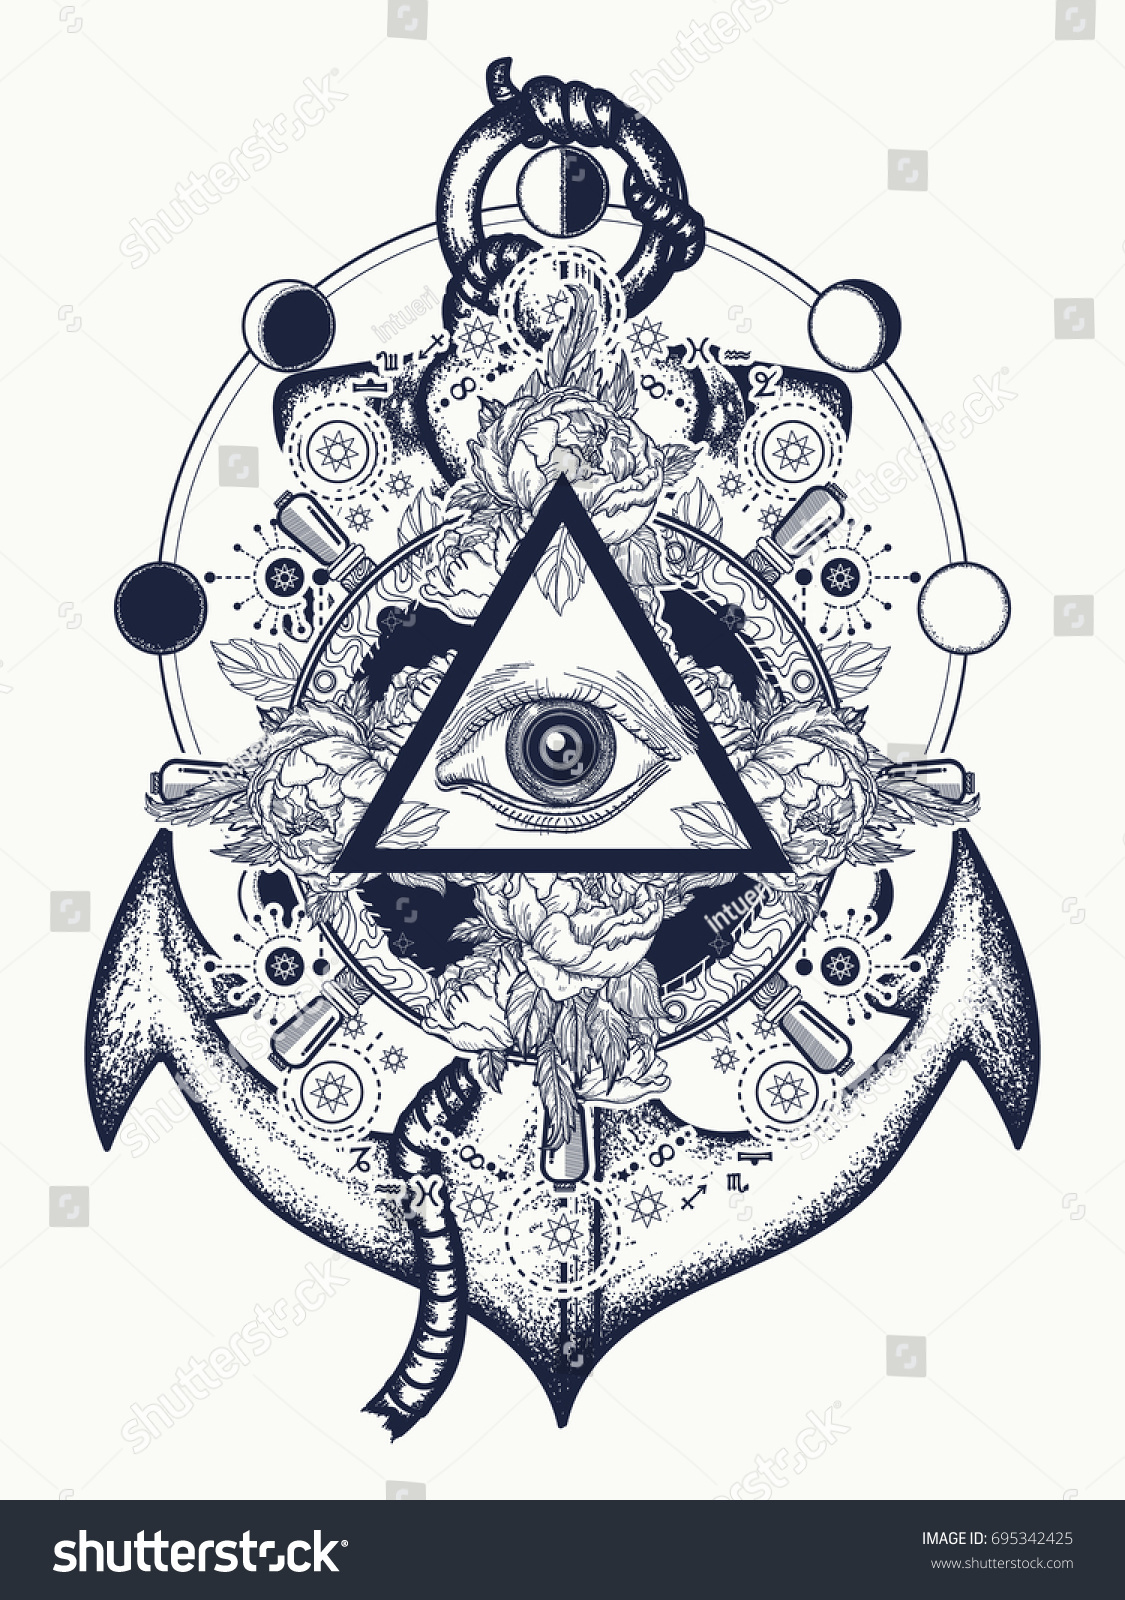 All seeing eye tattoo art vector stock vector 695342425 shutterstock all seeing eye tattoo art vector freemason and spiritual symbols alchemy medieval religion biocorpaavc Image collections